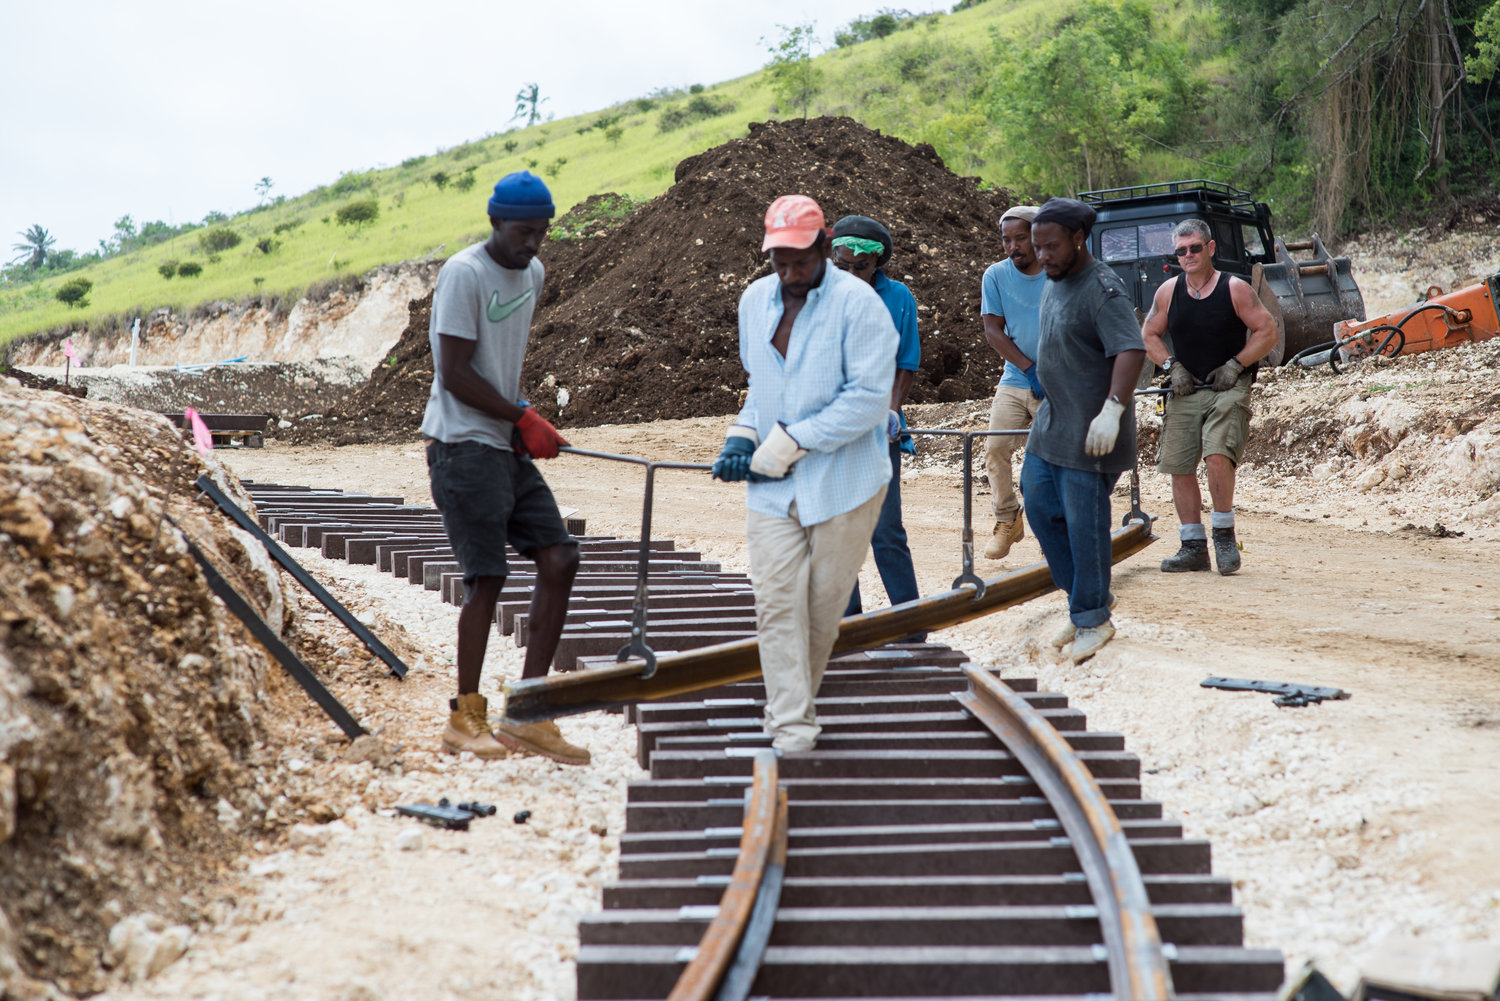 Rum and Rails in Barbados